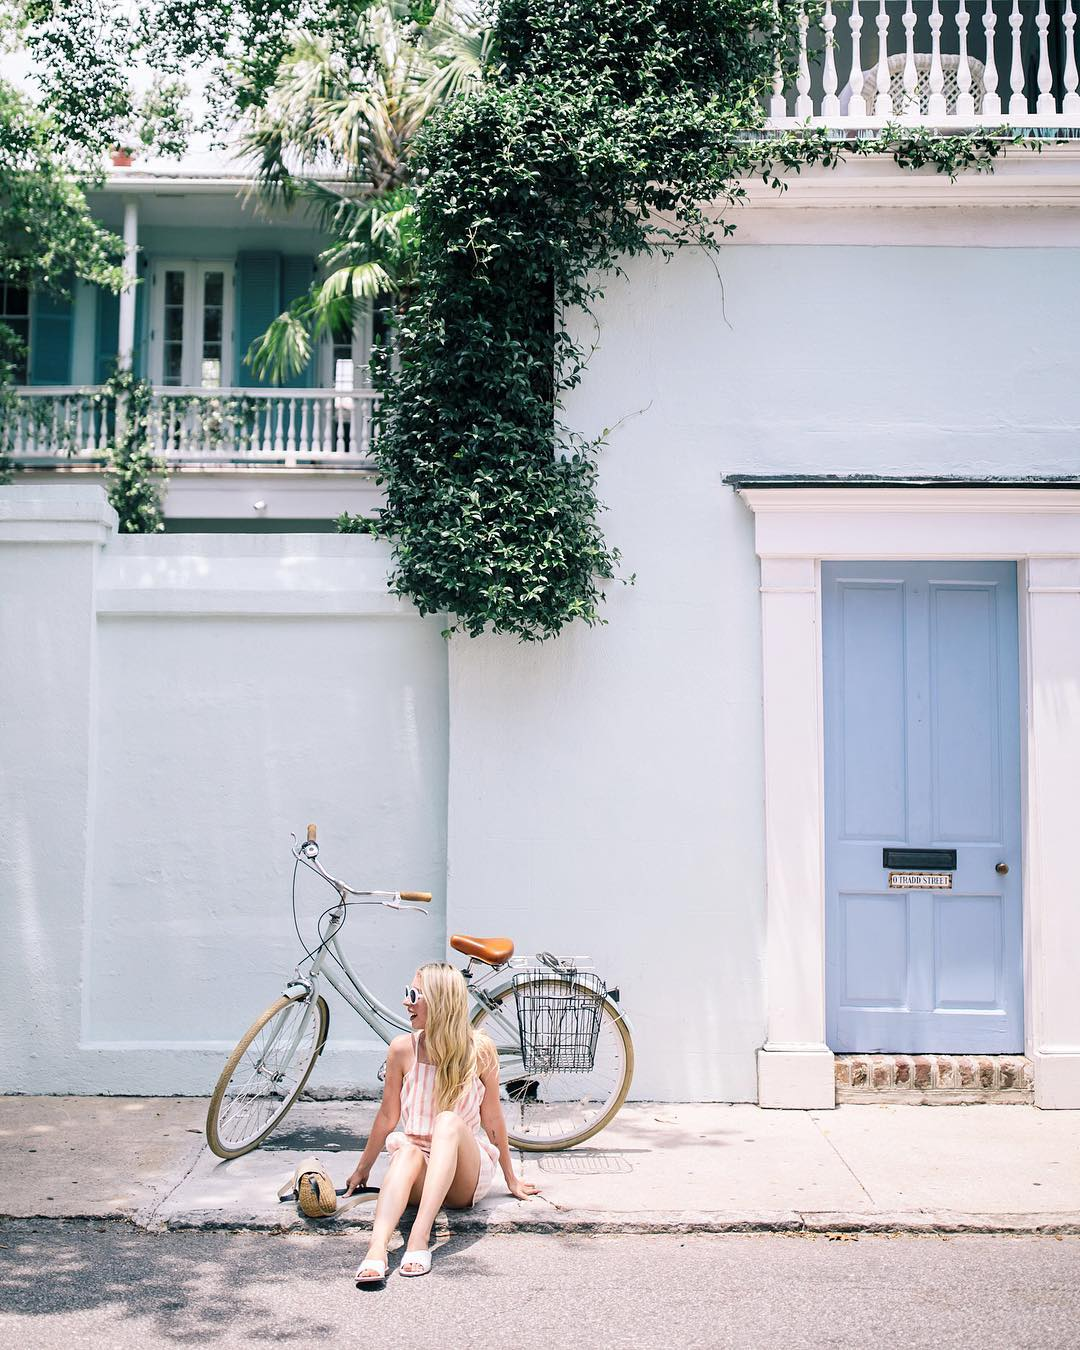 bachelorette cities charleston women sitting by bike on curb in front of blue building